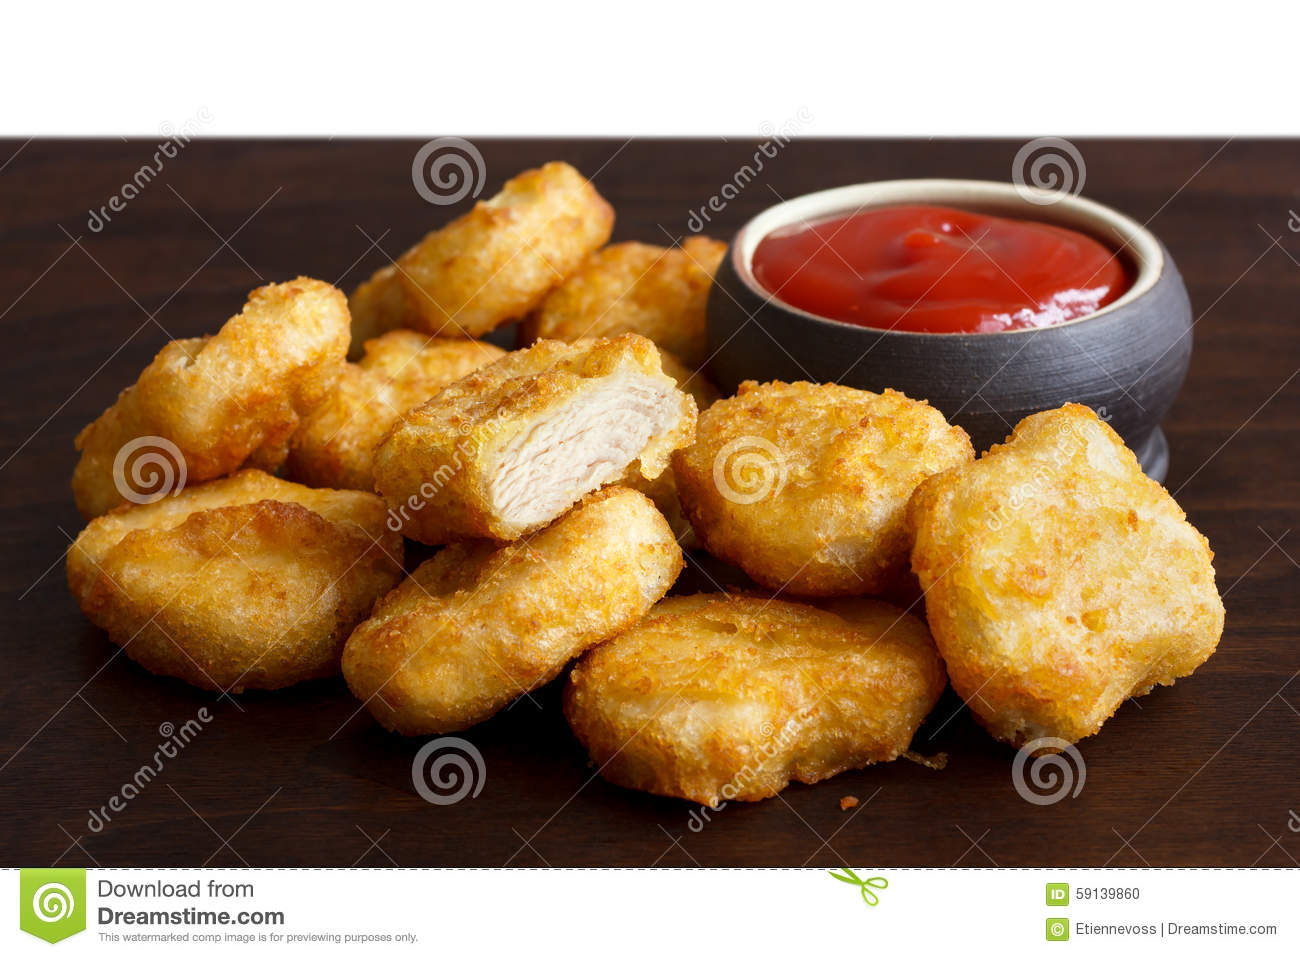 Pile of golden deep-fried battered chicken nuggets with empty ru